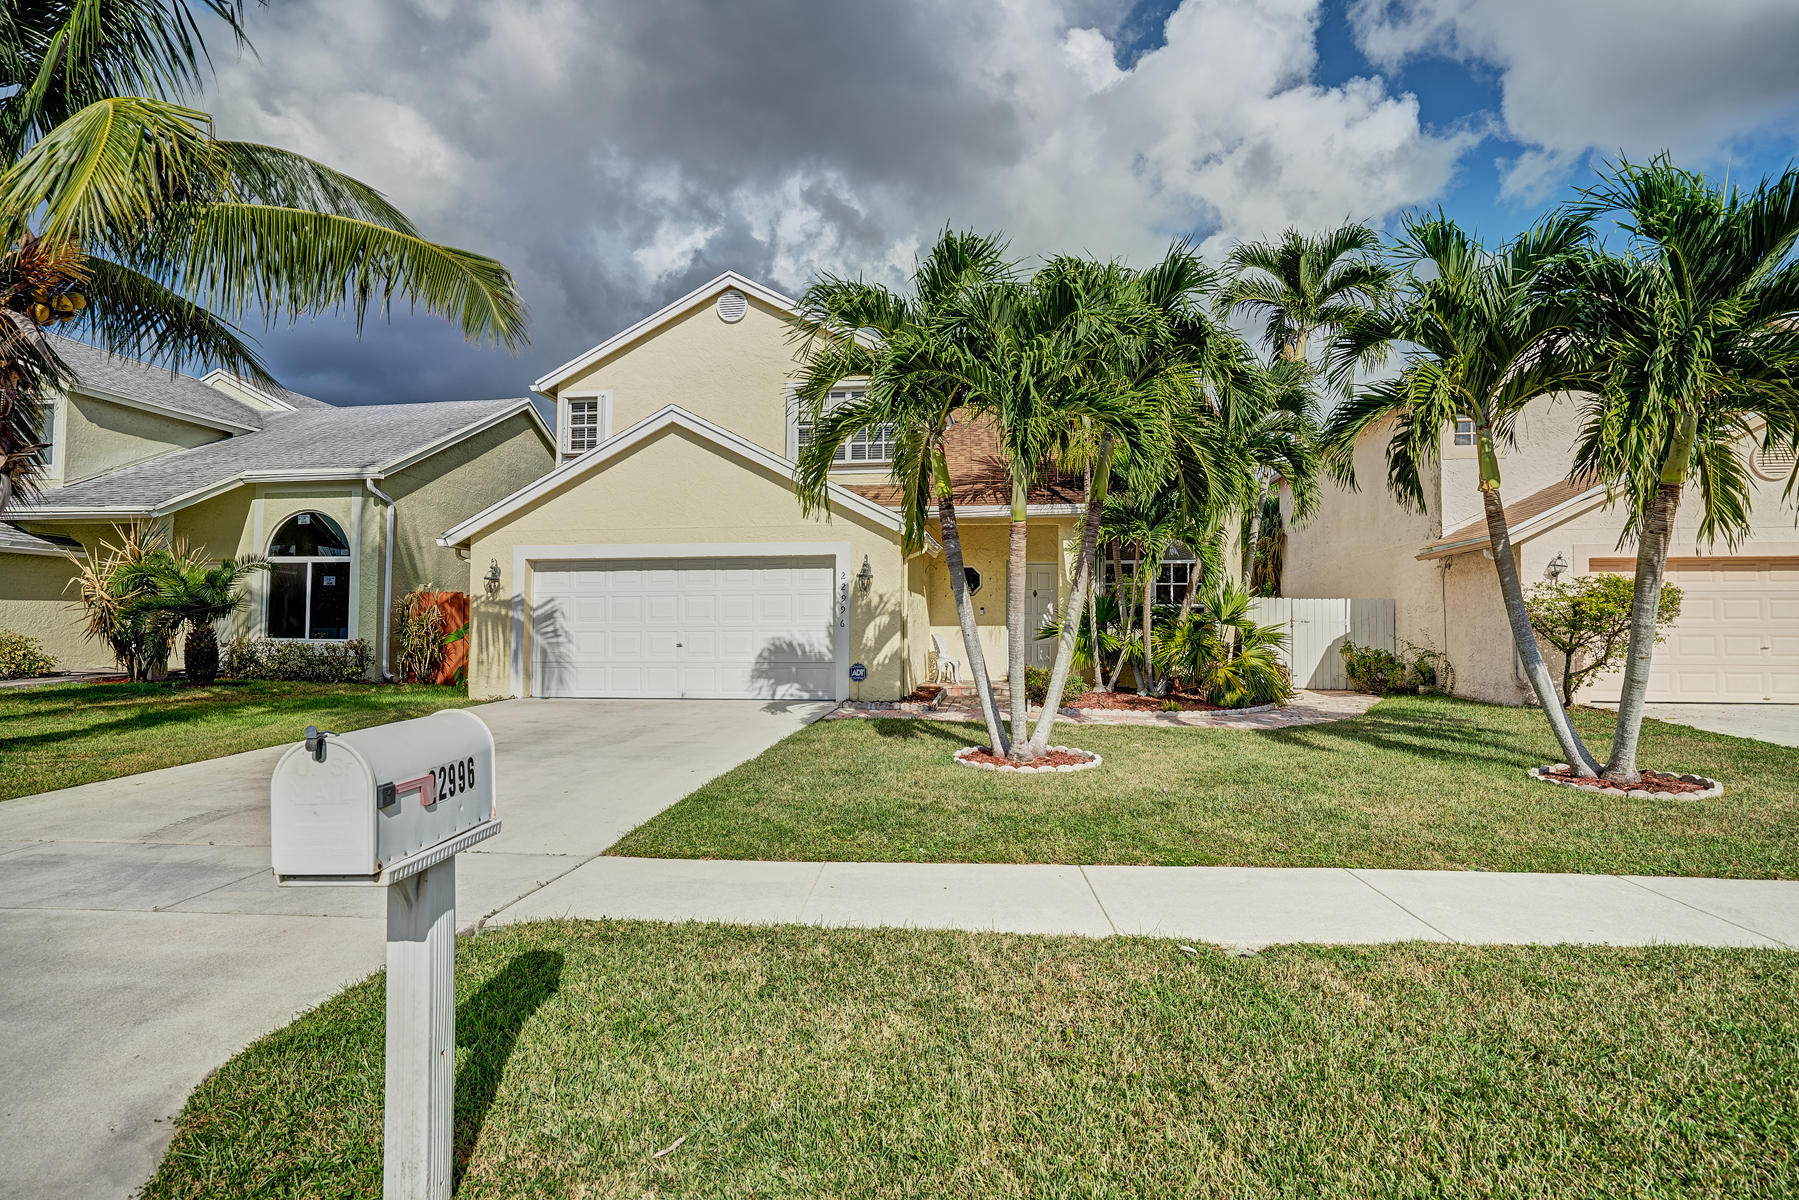 Home for sale in Trends At Boca Raton Boca Raton Florida